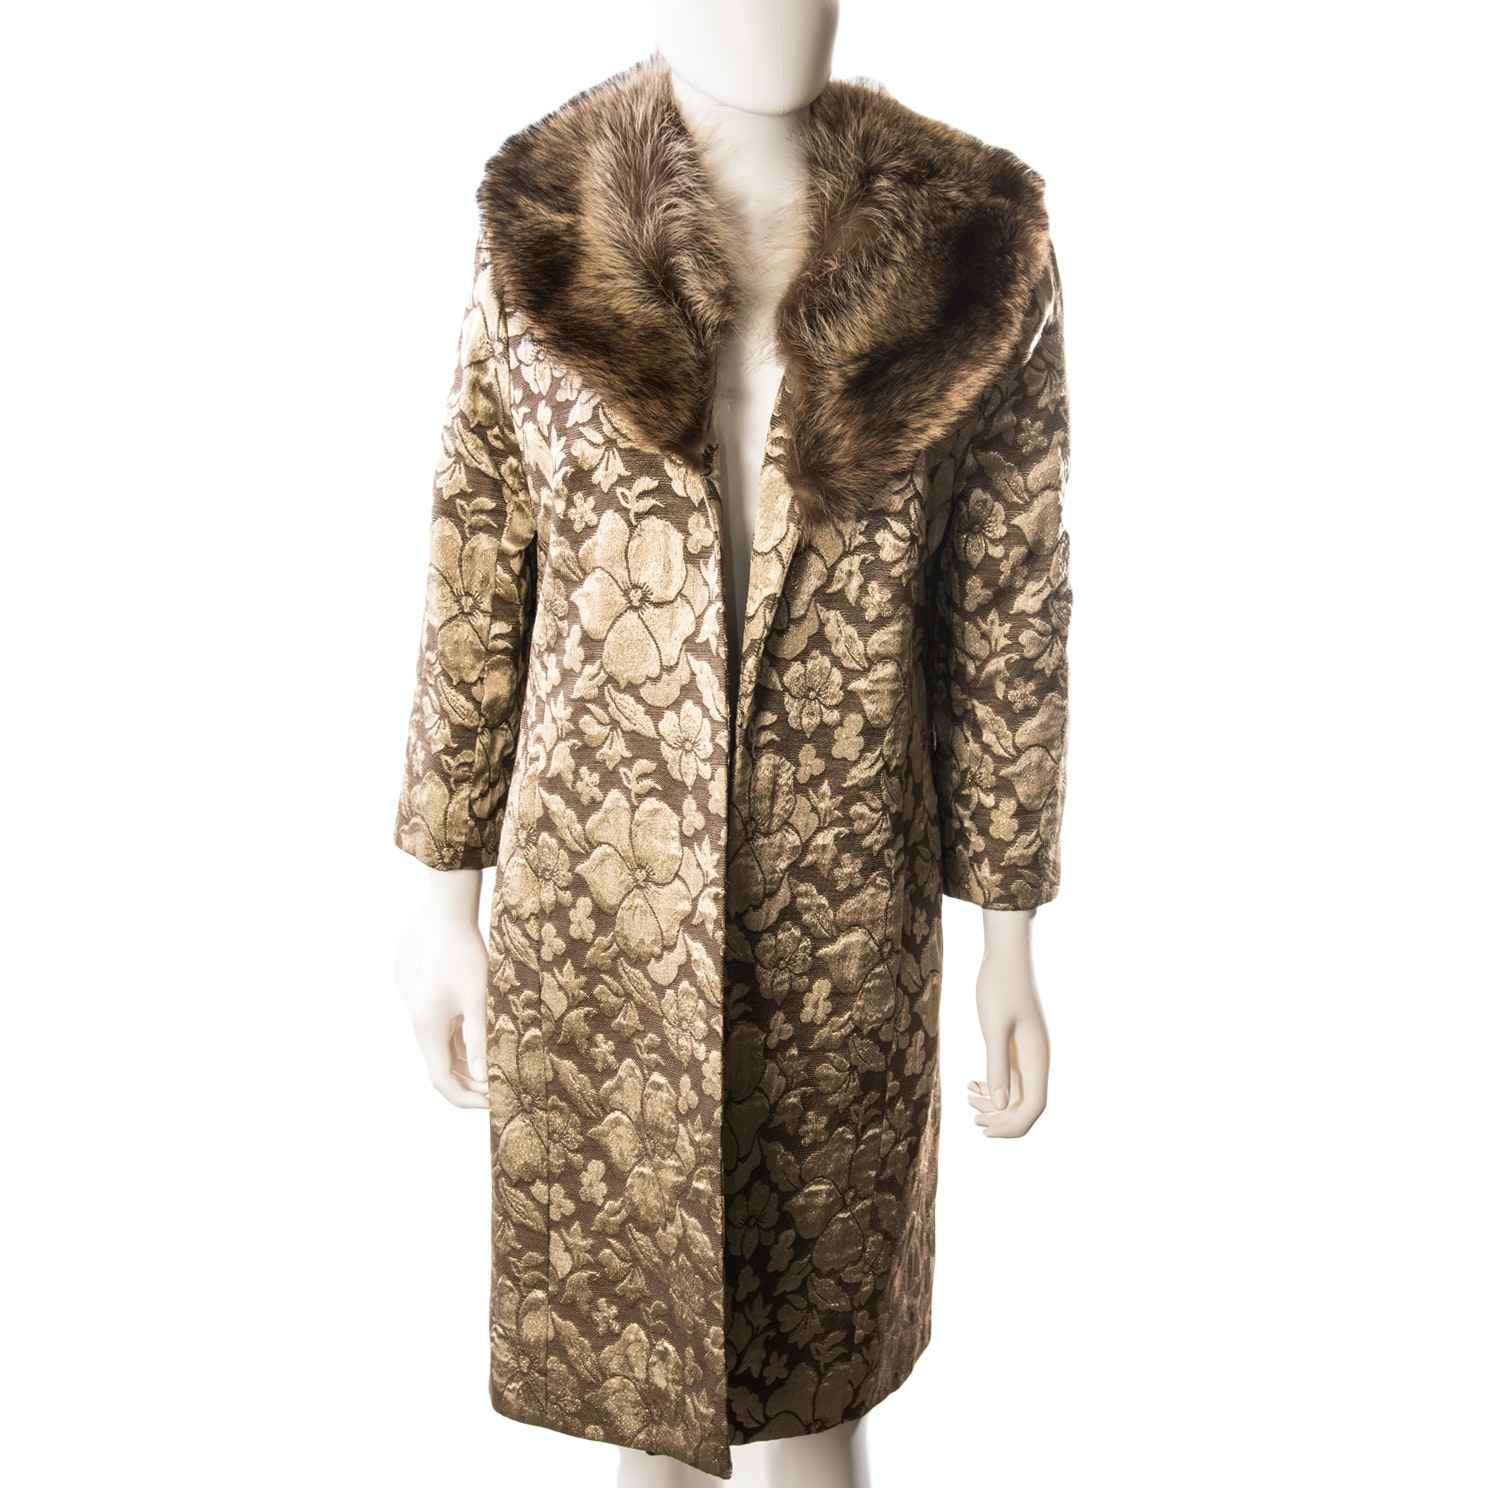 Bloomingdales Brocade Jacket with Raccoon Fur Collar